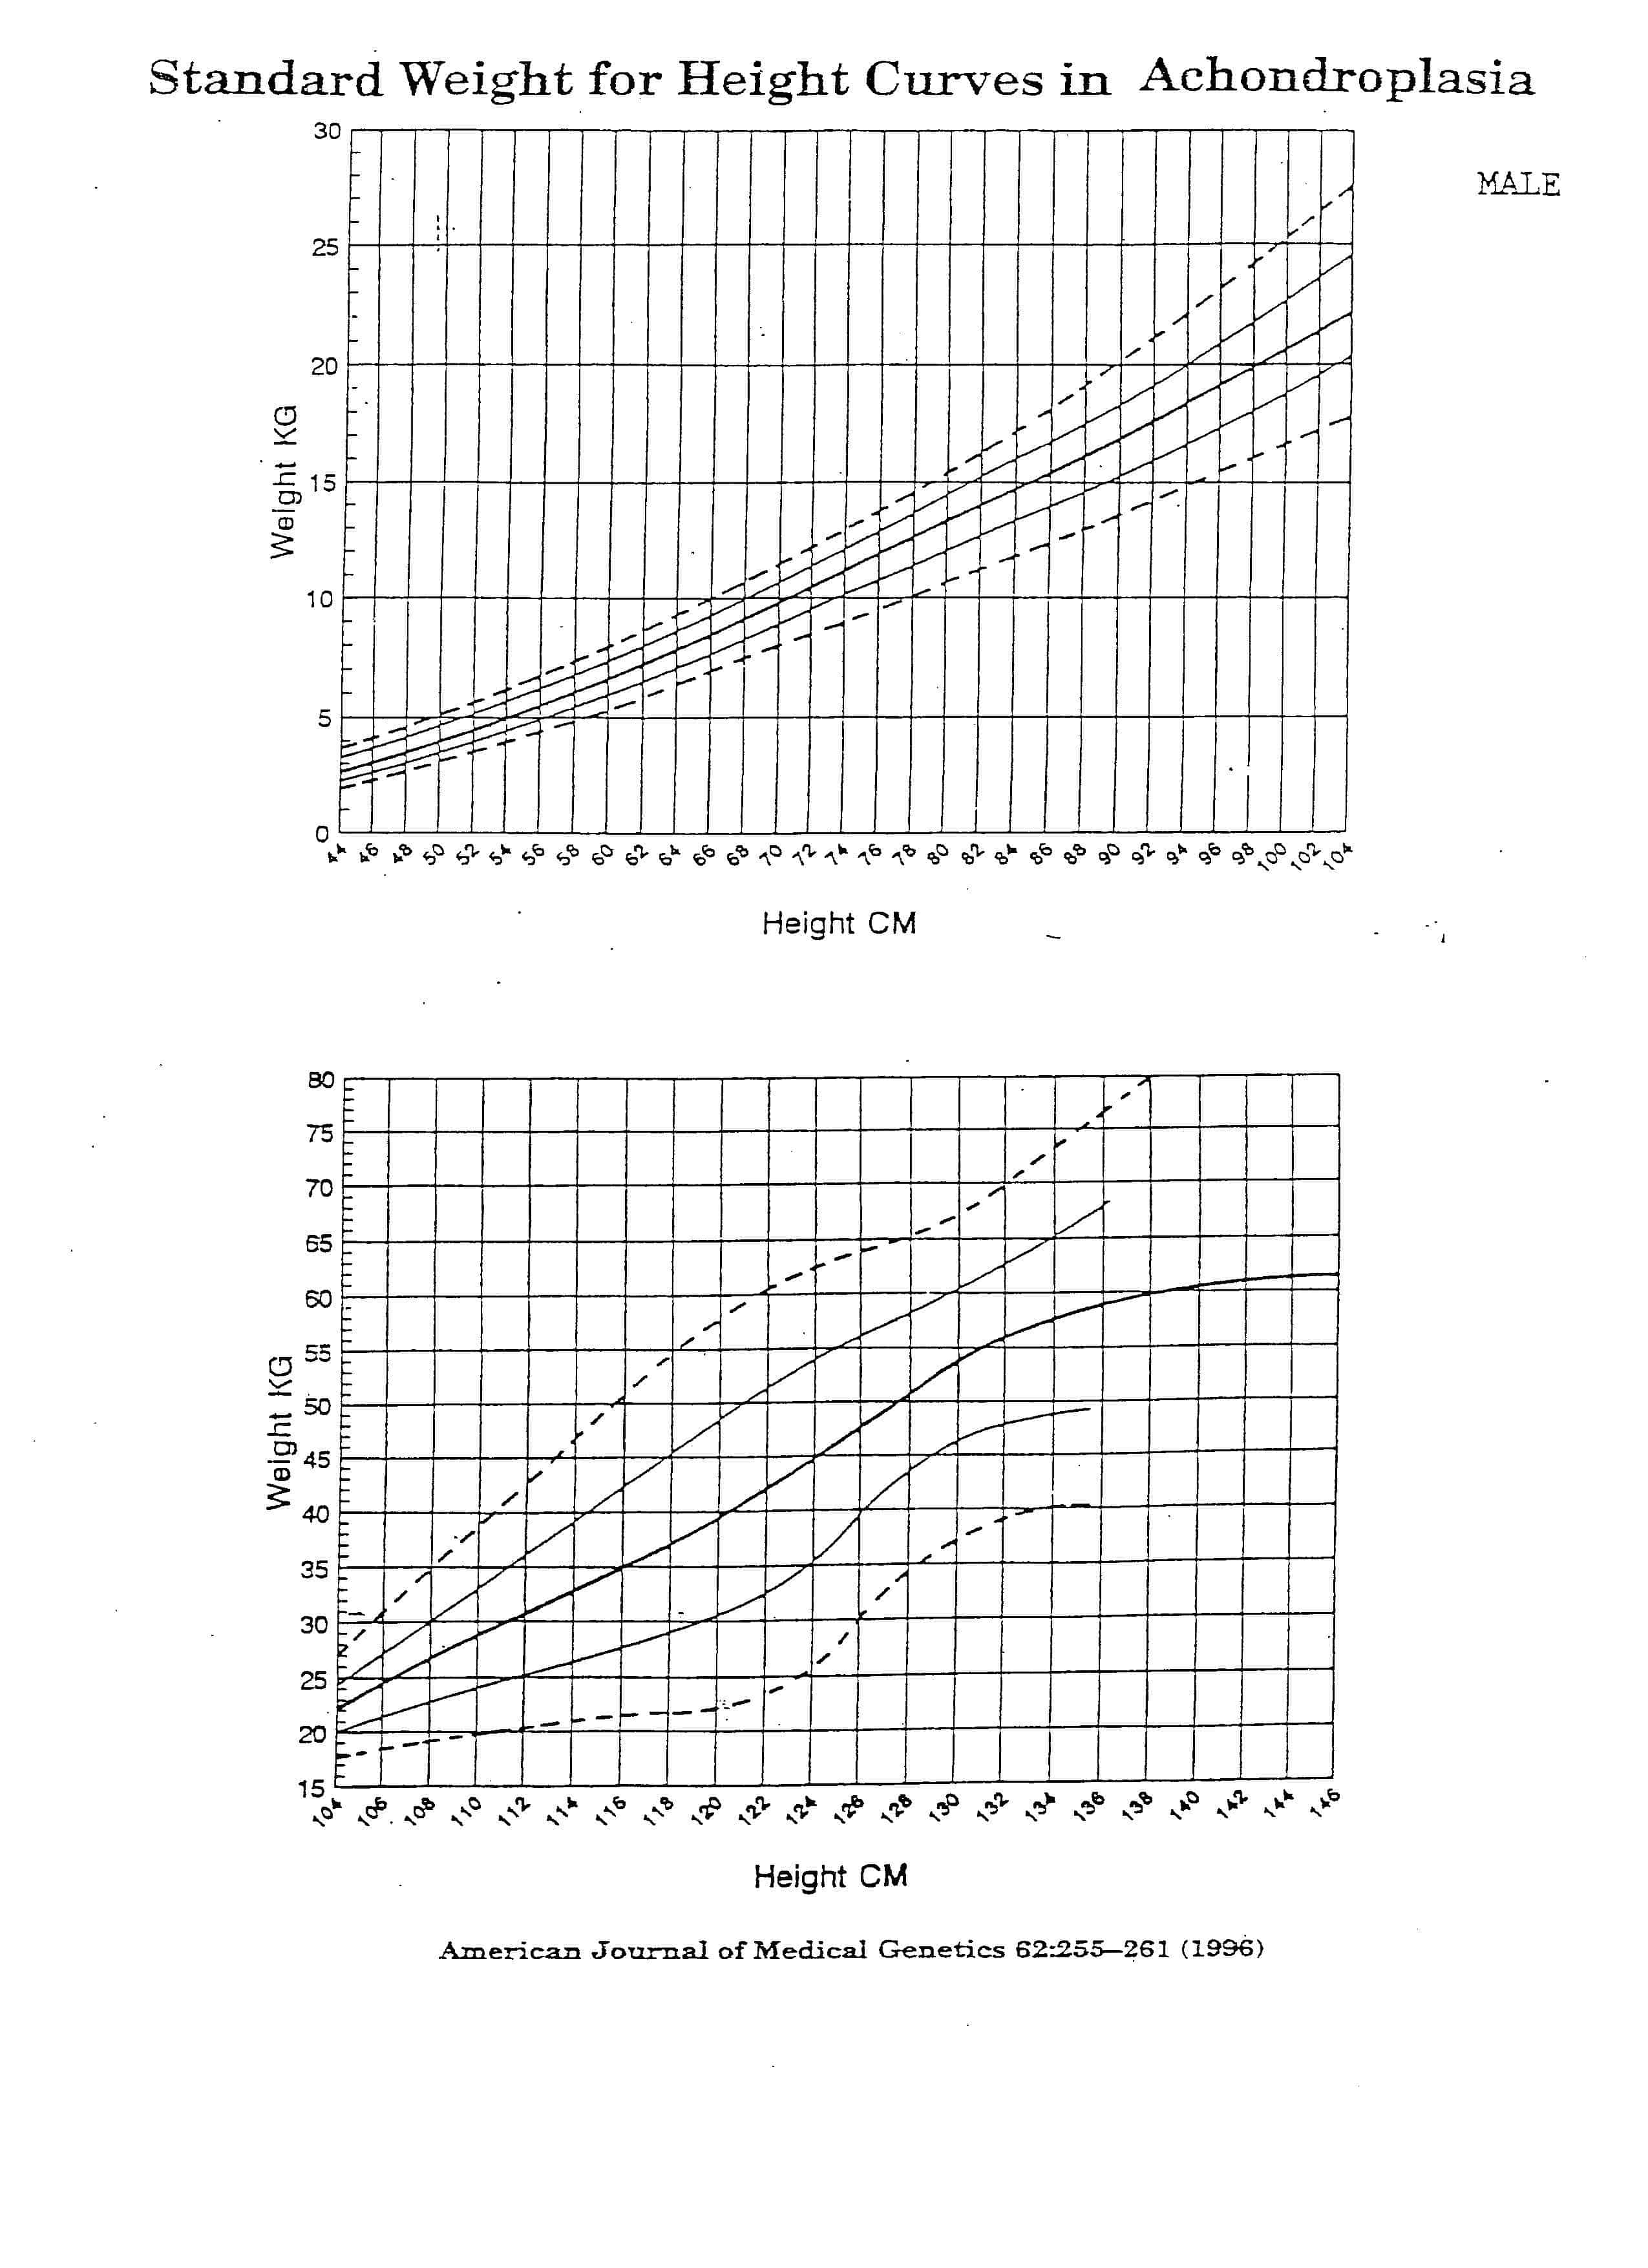 Achondroplasia growth and motor milestones charts delicious standard height for weight curves in achondroplasia growth male nvjuhfo Choice Image